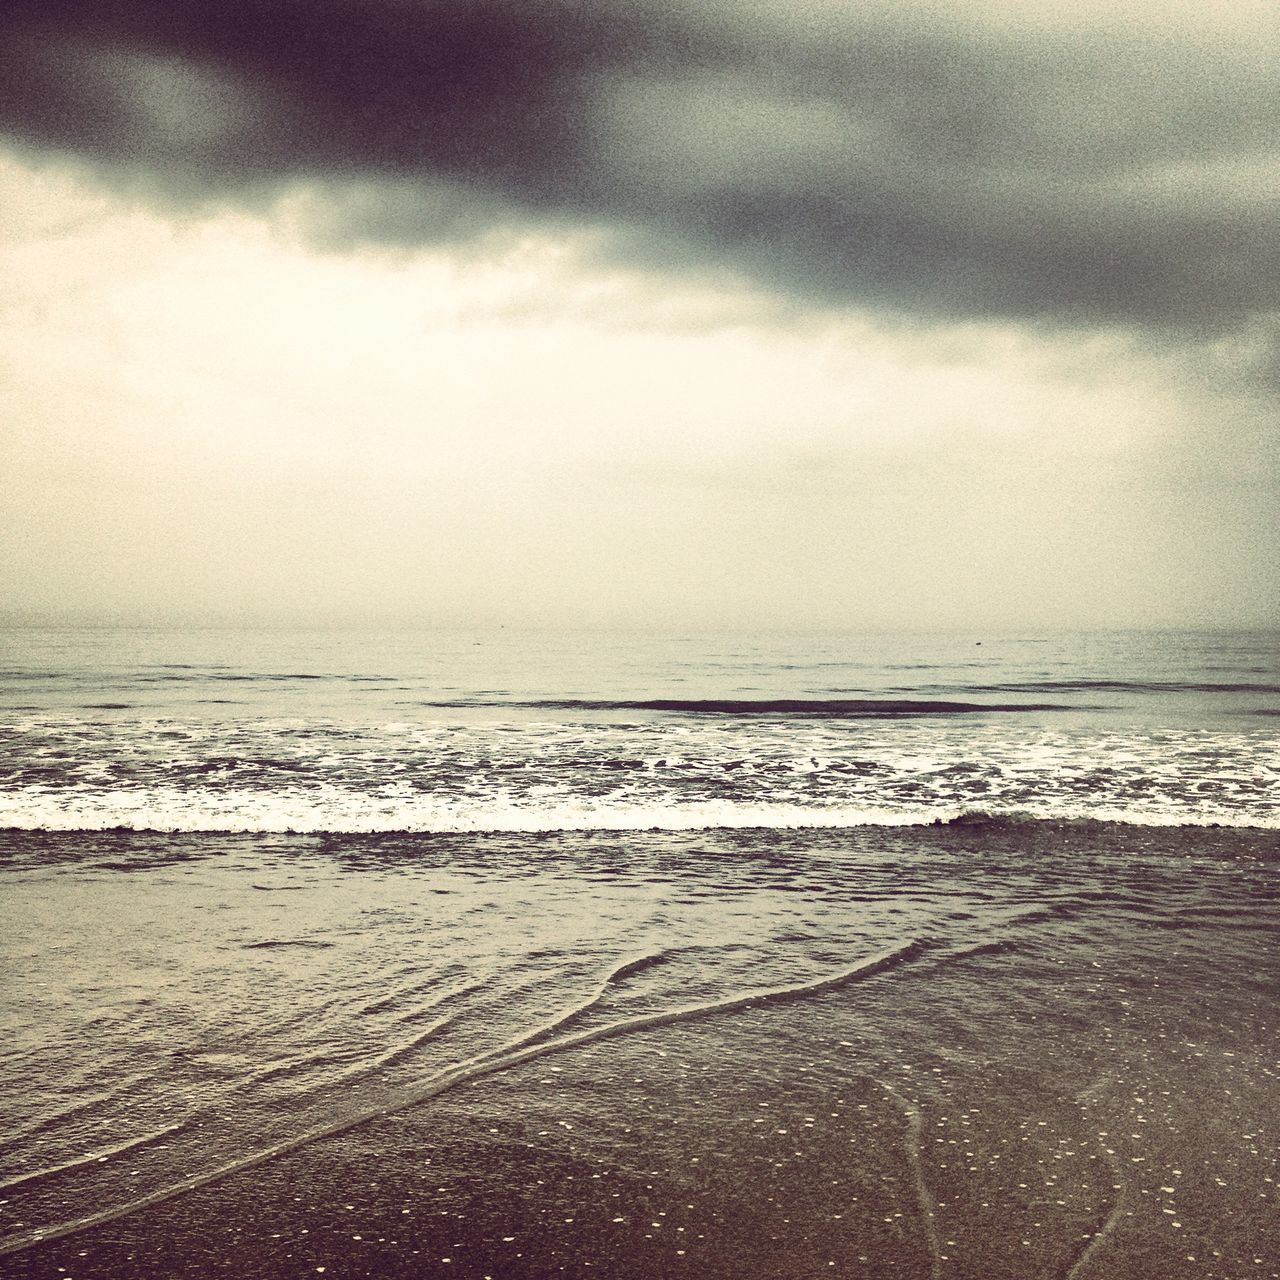 sea, wave, water, beach, horizon over water, scenics, beauty in nature, sky, tranquility, nature, no people, tranquil scene, cloud - sky, tide, sand, outdoors, day